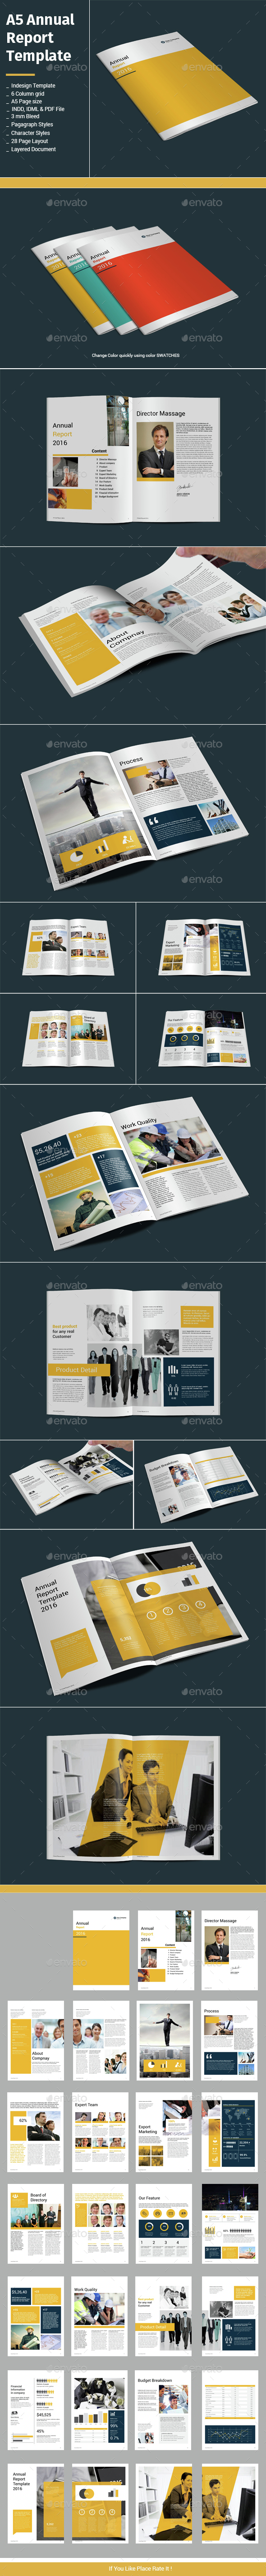 A5 Annual Report Template - Informational Brochures